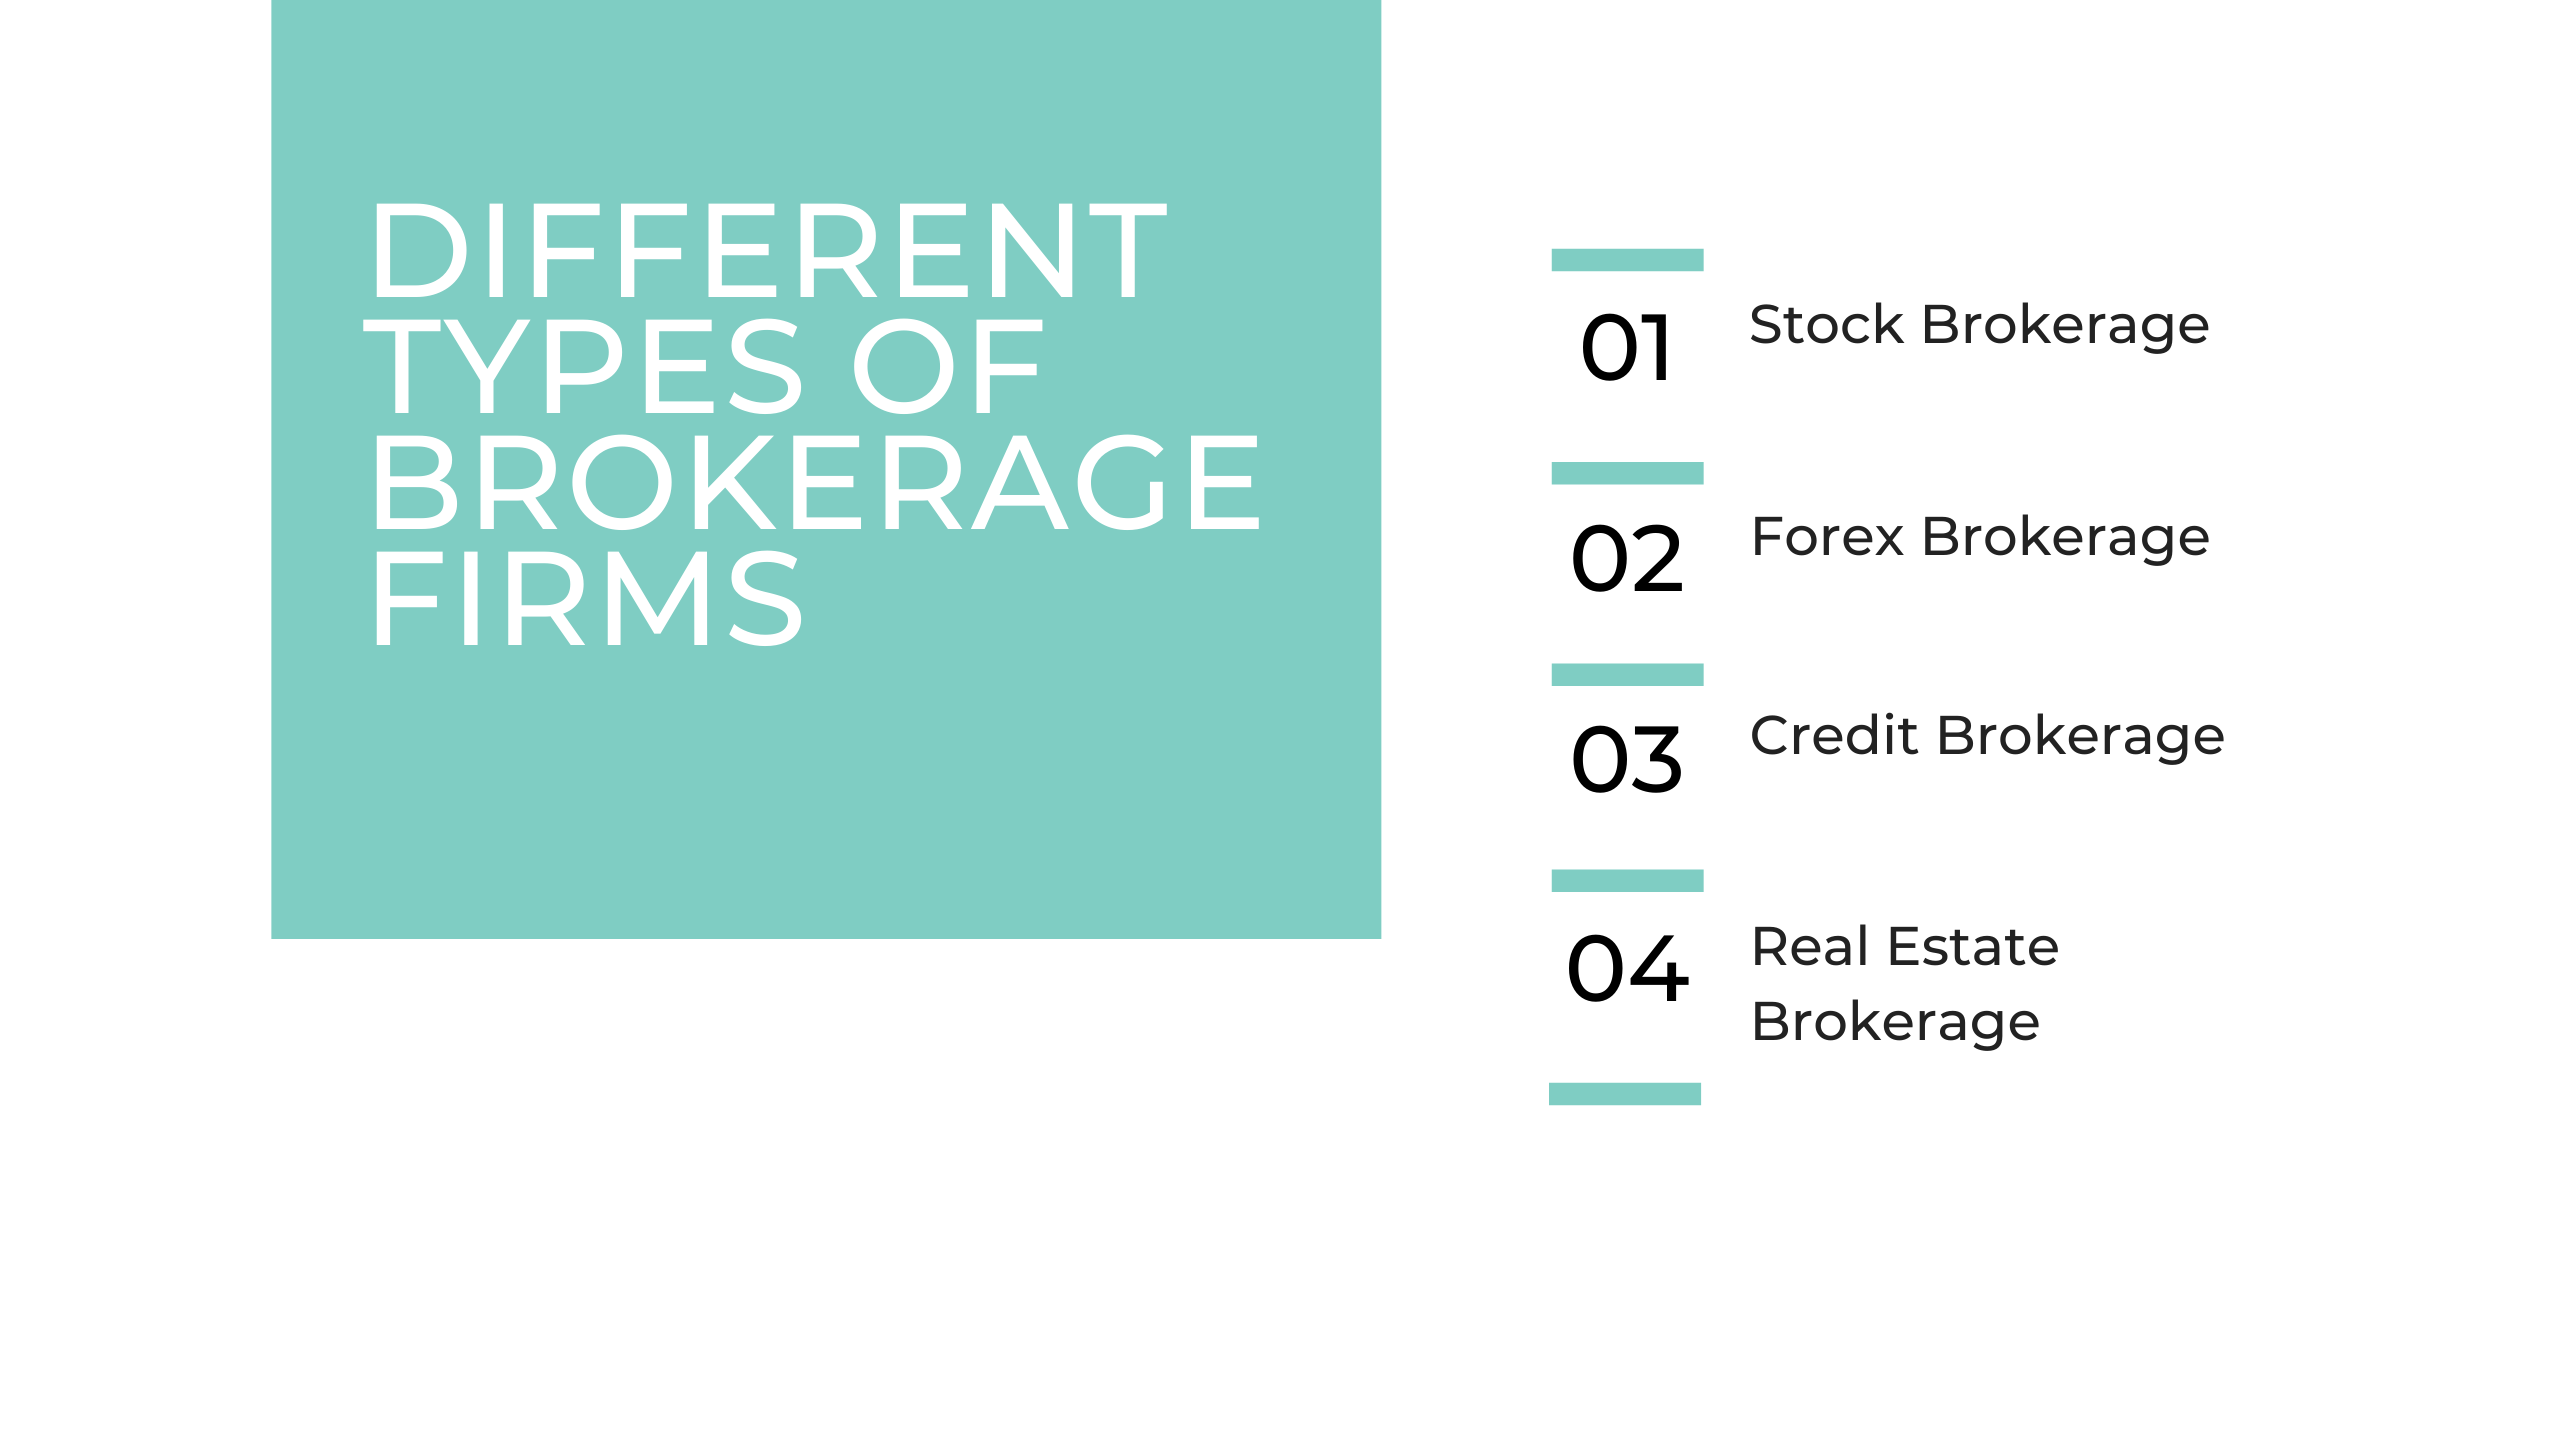 Different Blog Image Types of Brokerage Firms